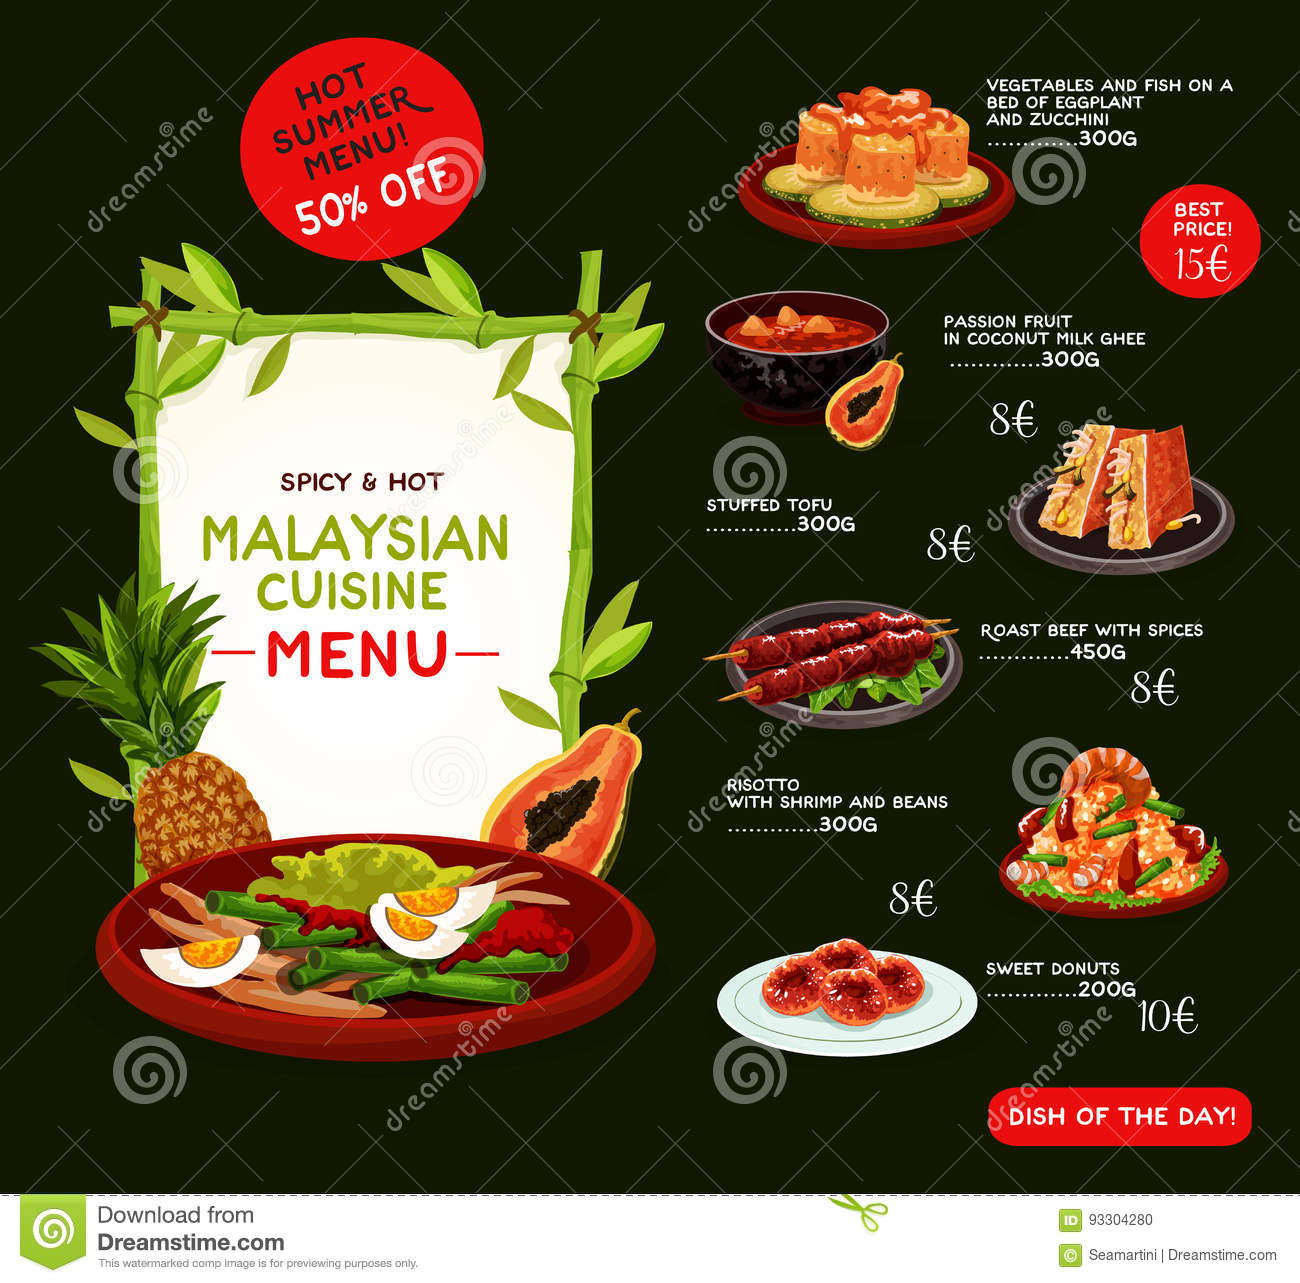 Malaysian cuisine menu template with asian food stock for Asian cuisine menu